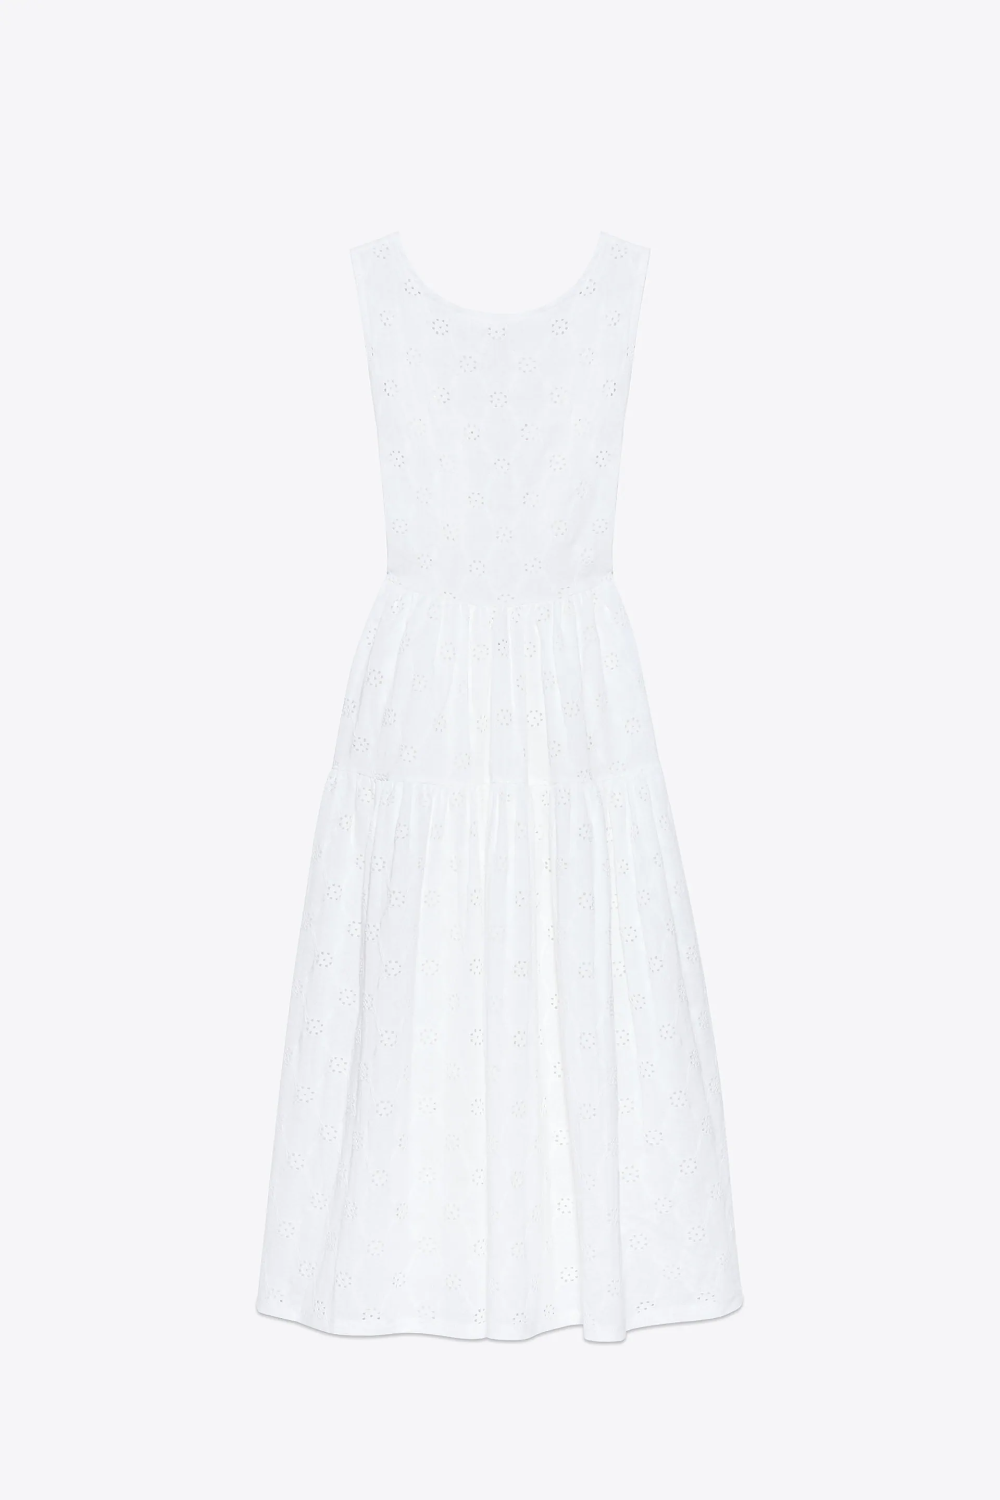 textured dress | zara united states in 2020 | high street